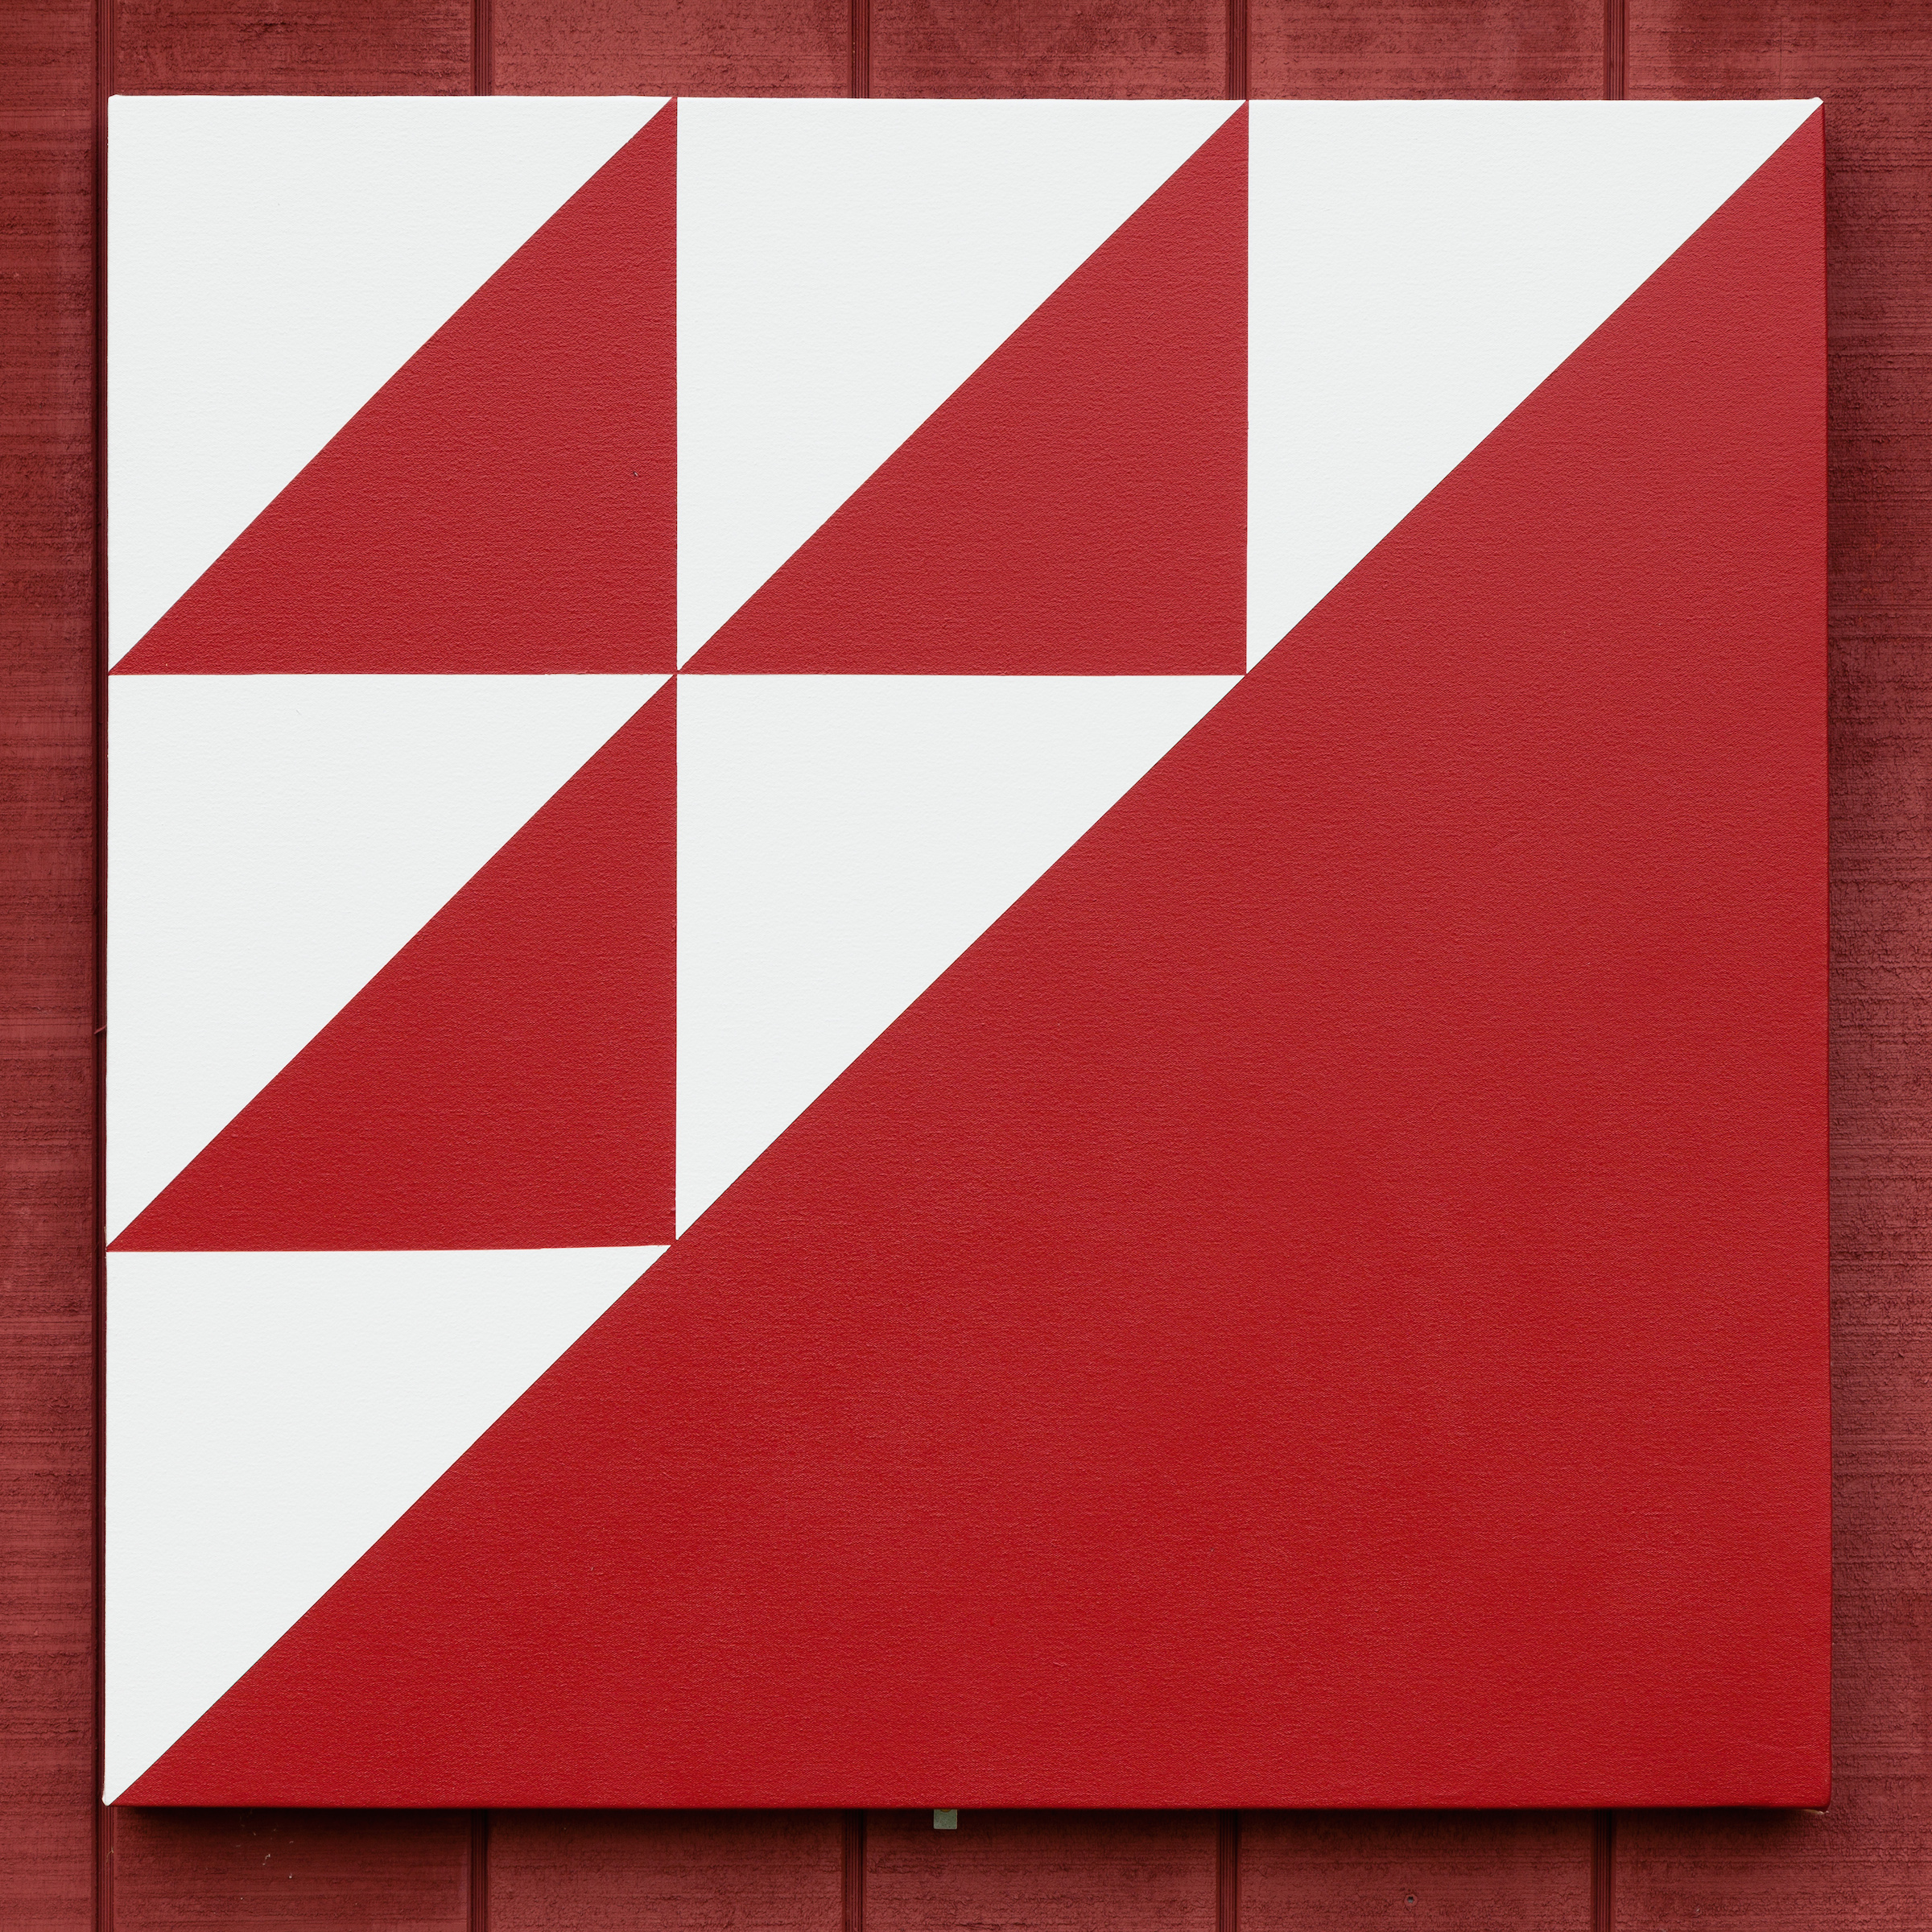 Lazaros,    Quilt Block Painting Number 5   , 2014, acrylic on canvas, 35.75 x 35.75 in